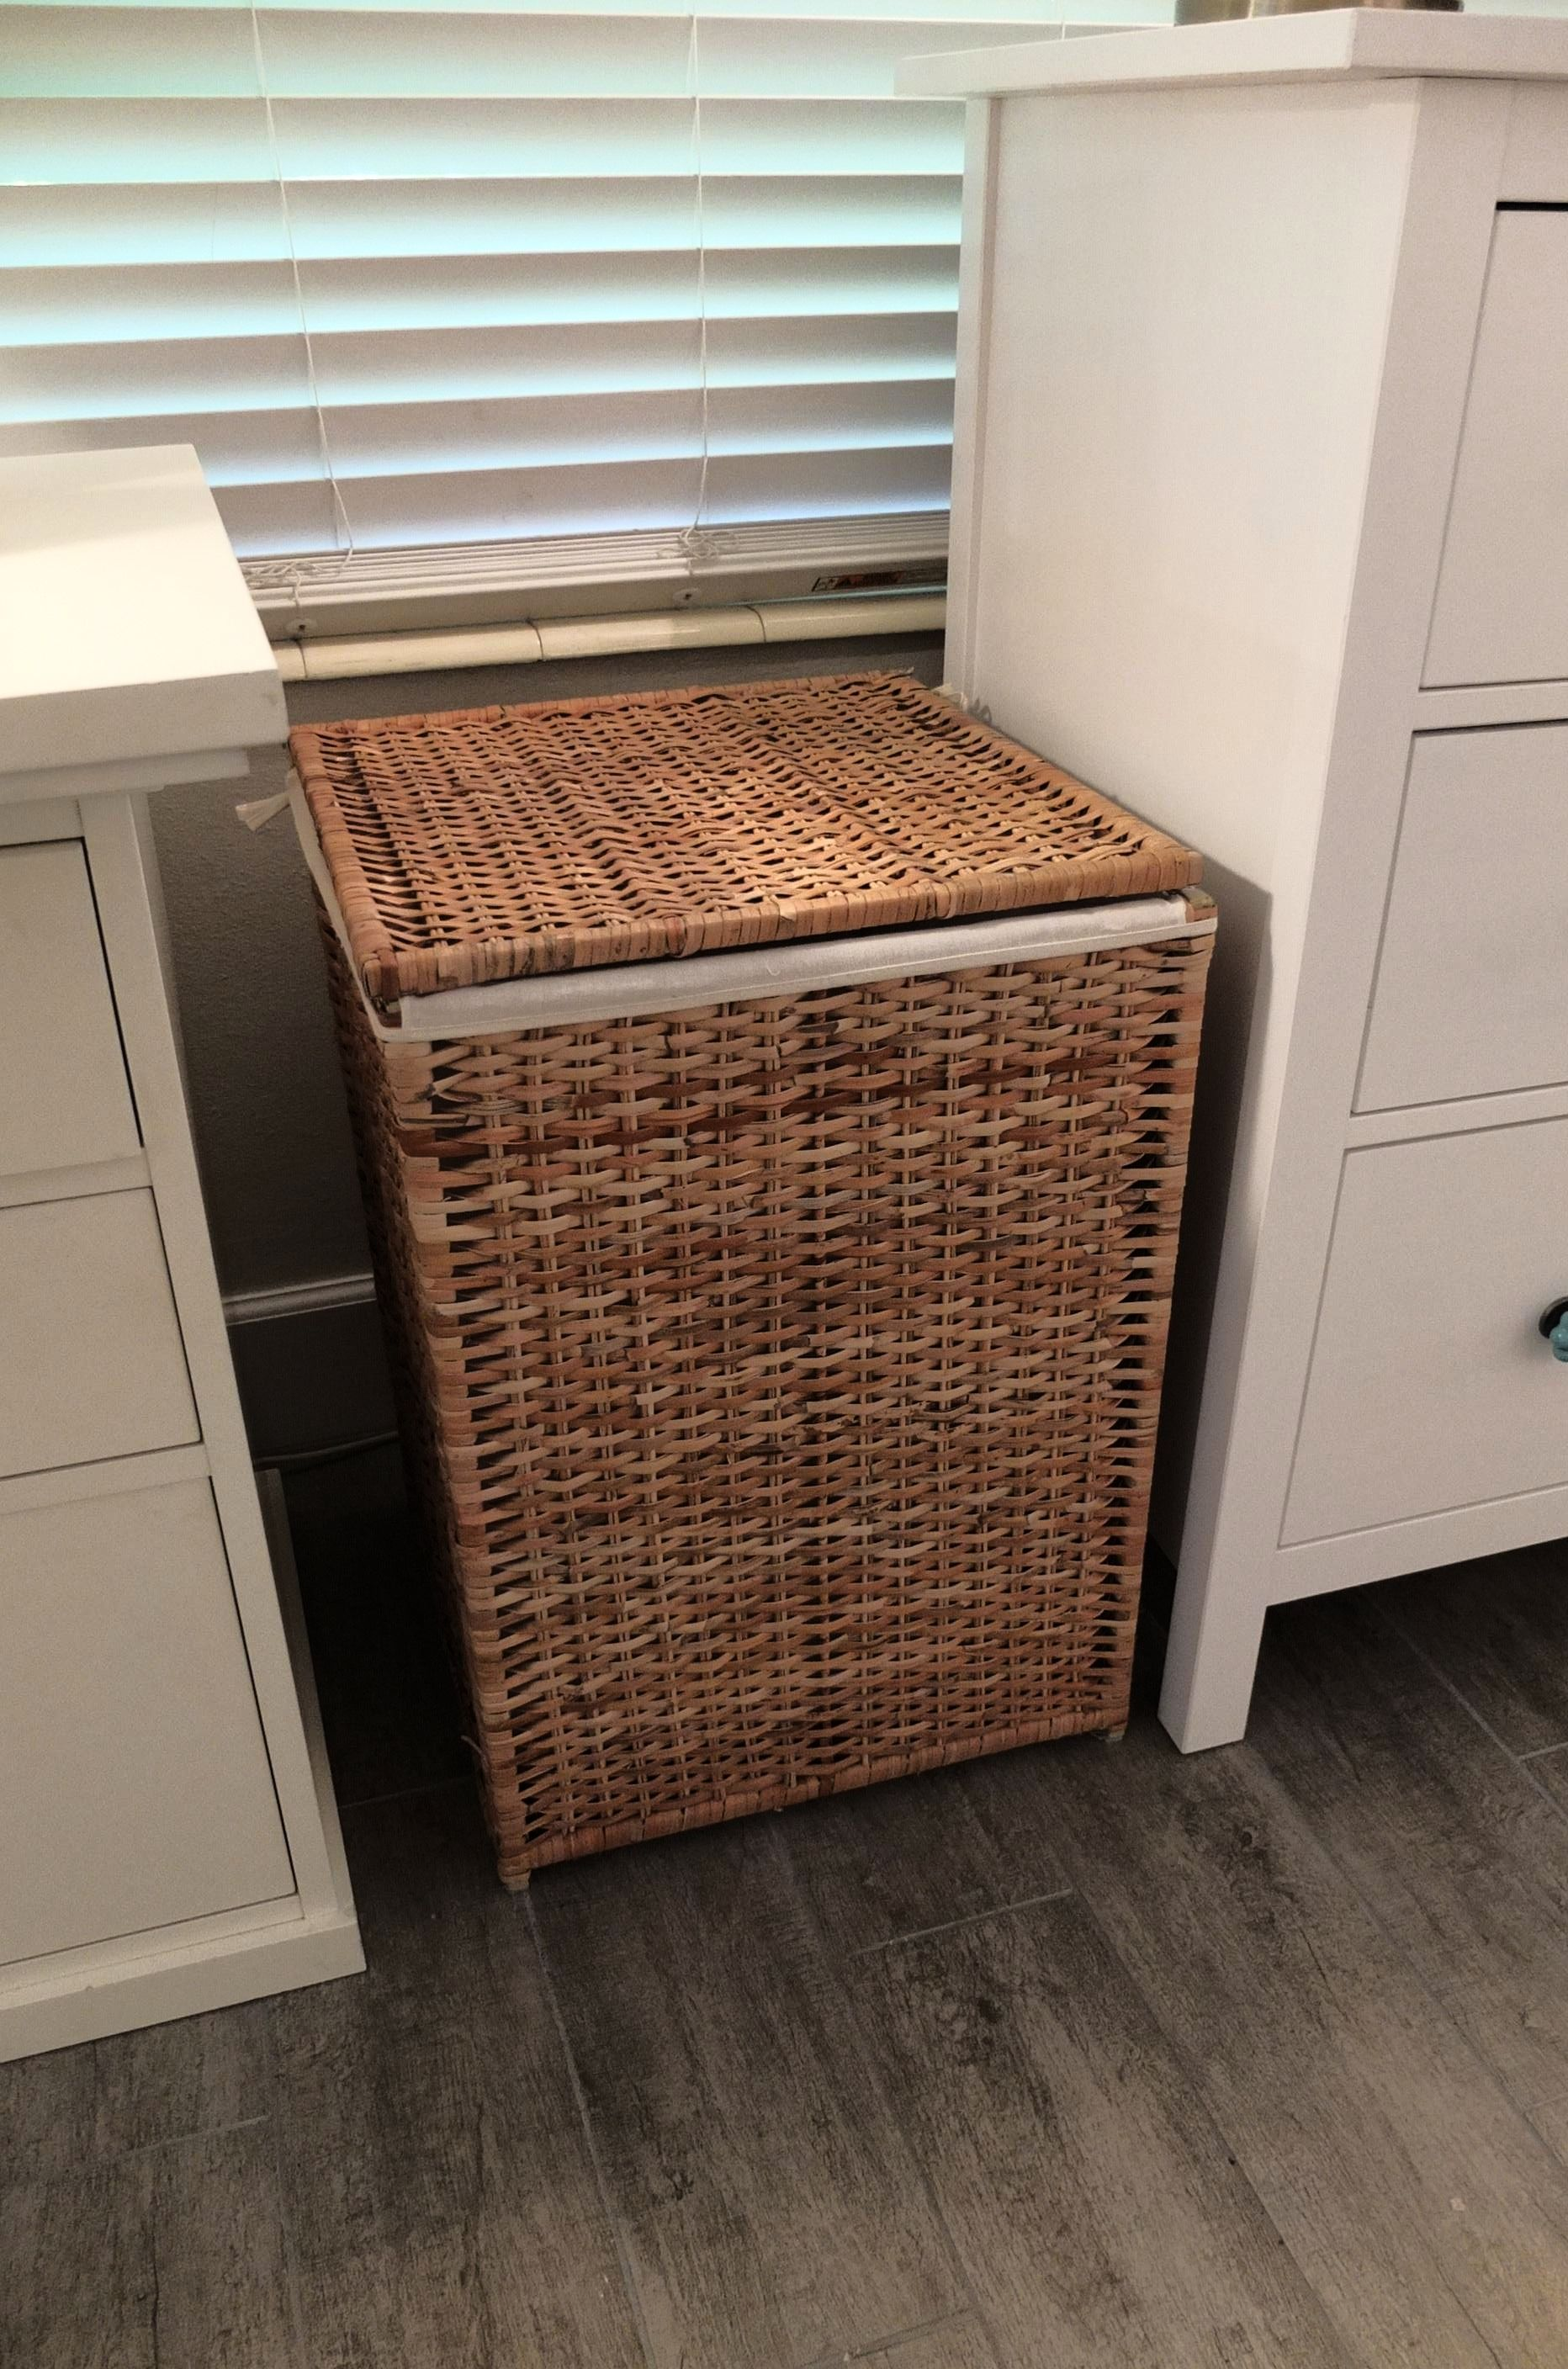 Bran s laundry basket with lining rattan laundry hamper hamper and rattan - Rattan clothes hamper ...